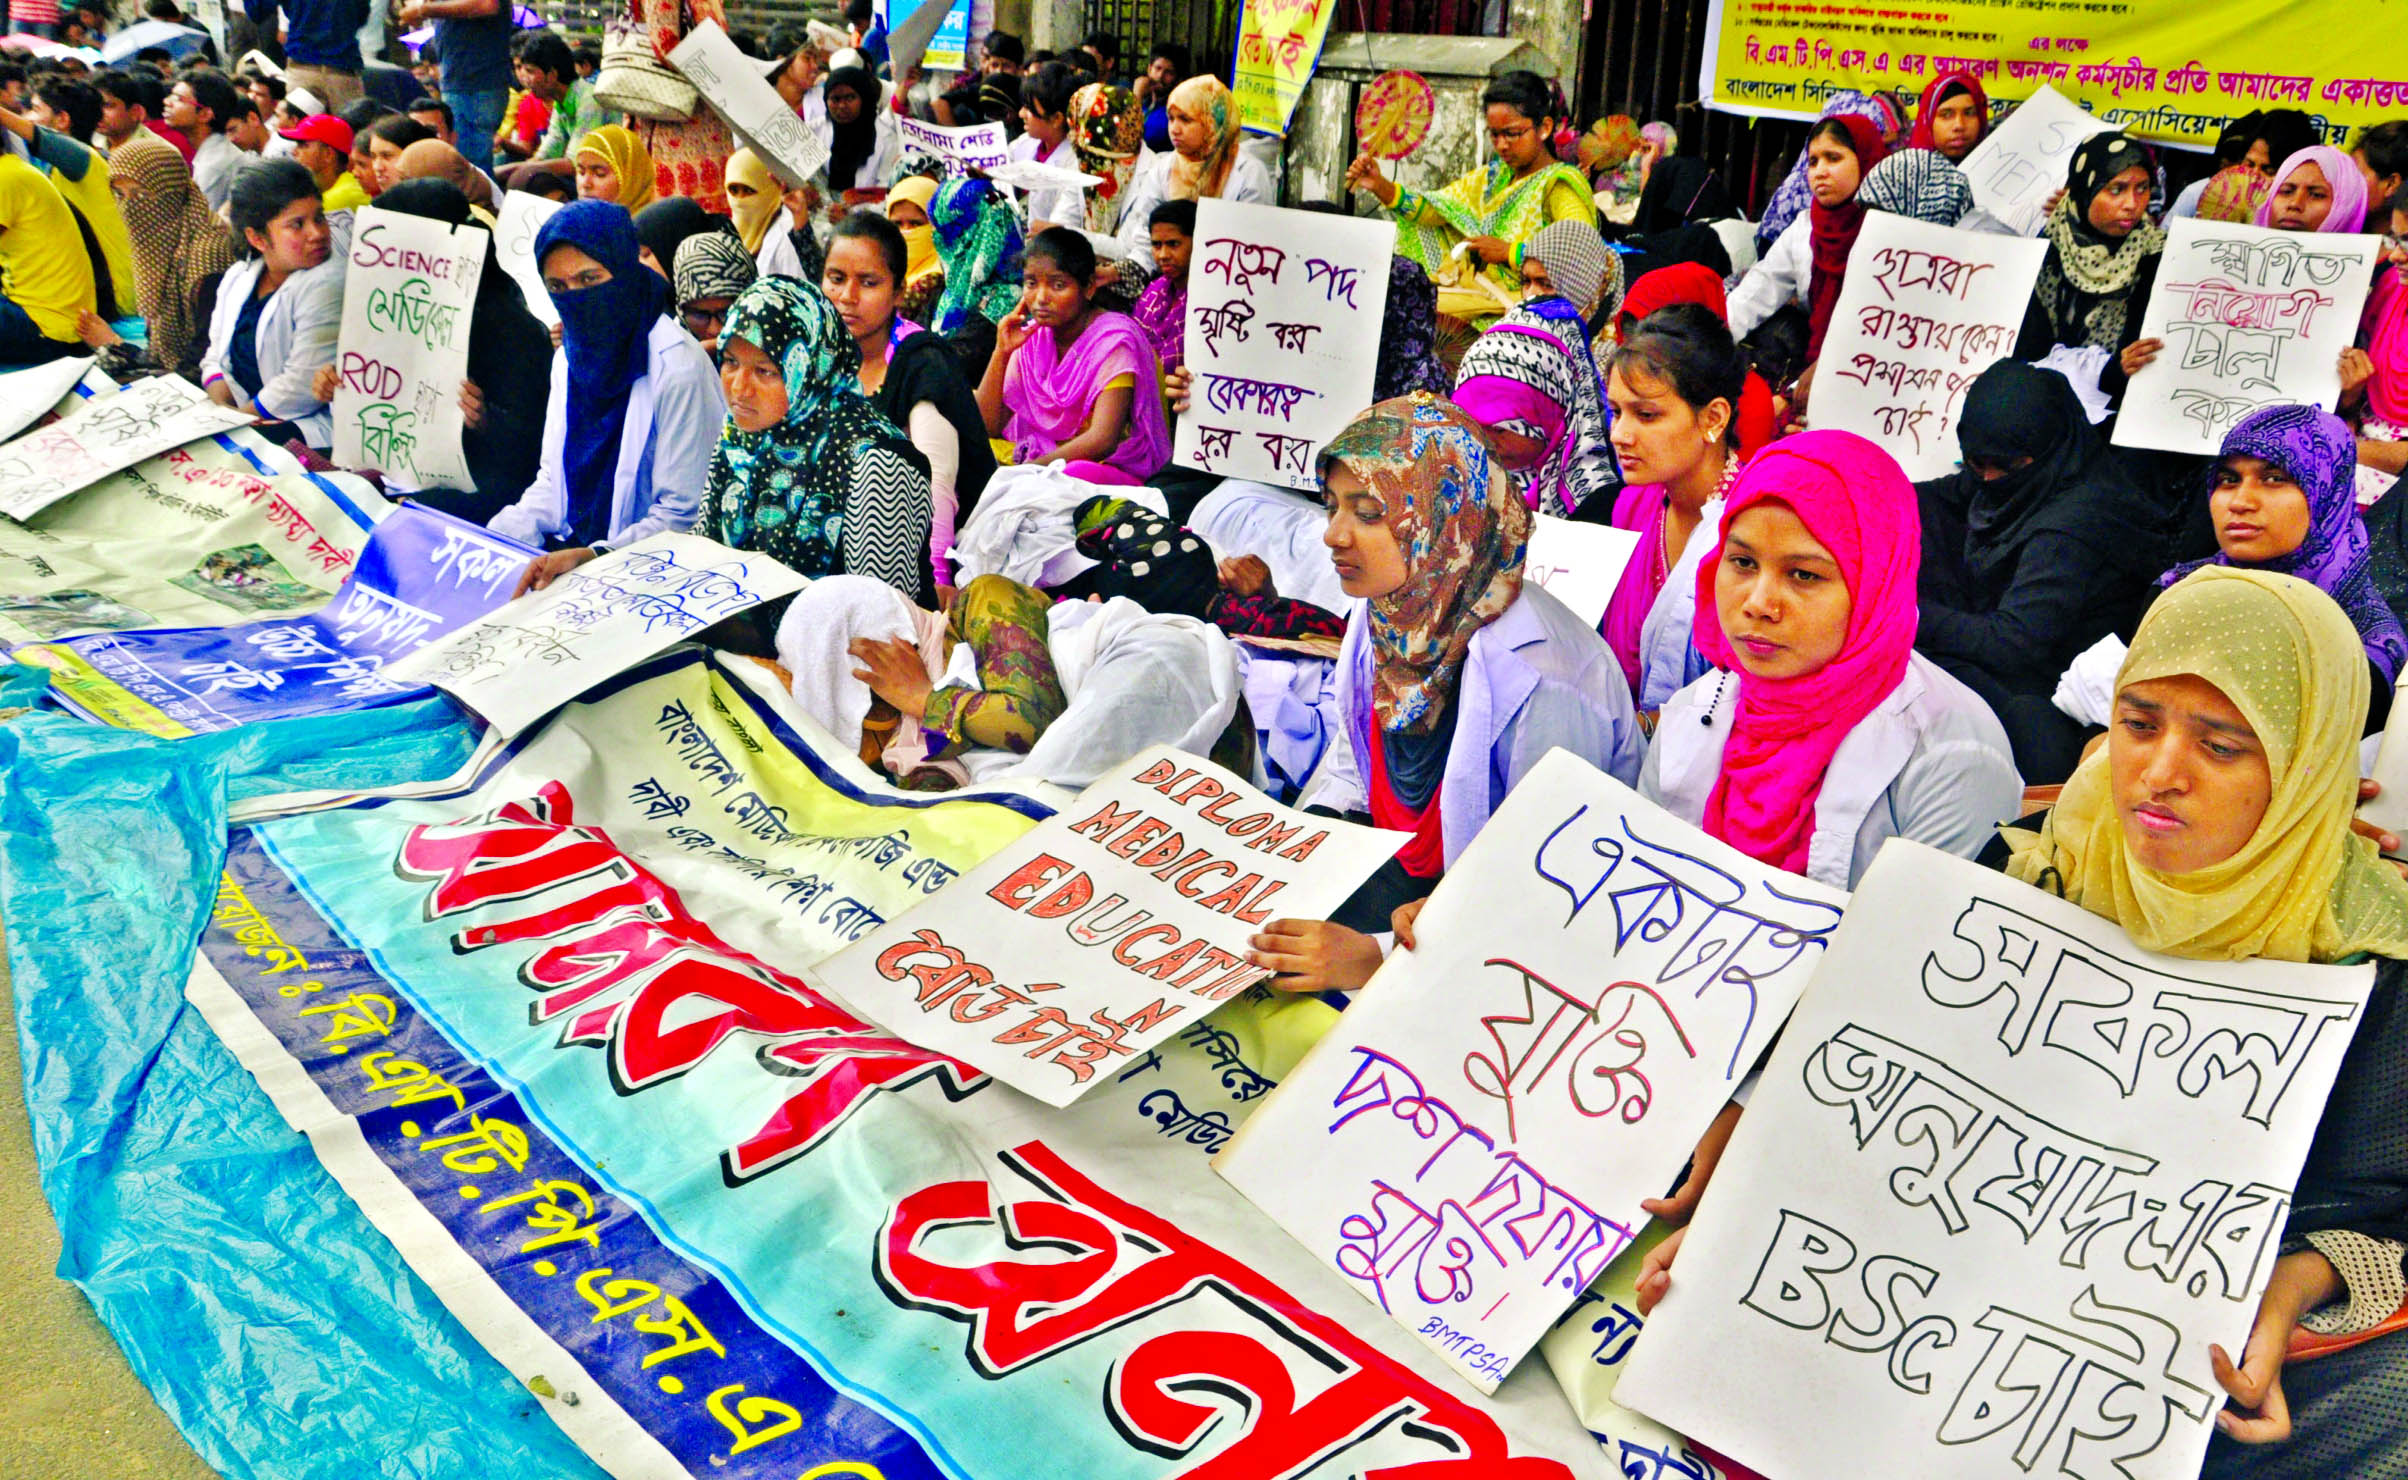 BMTPS members continuing their hunger strike in front of the Jatiya Press Club for implementing 10-point demands. This photo was taken on Tuesday.